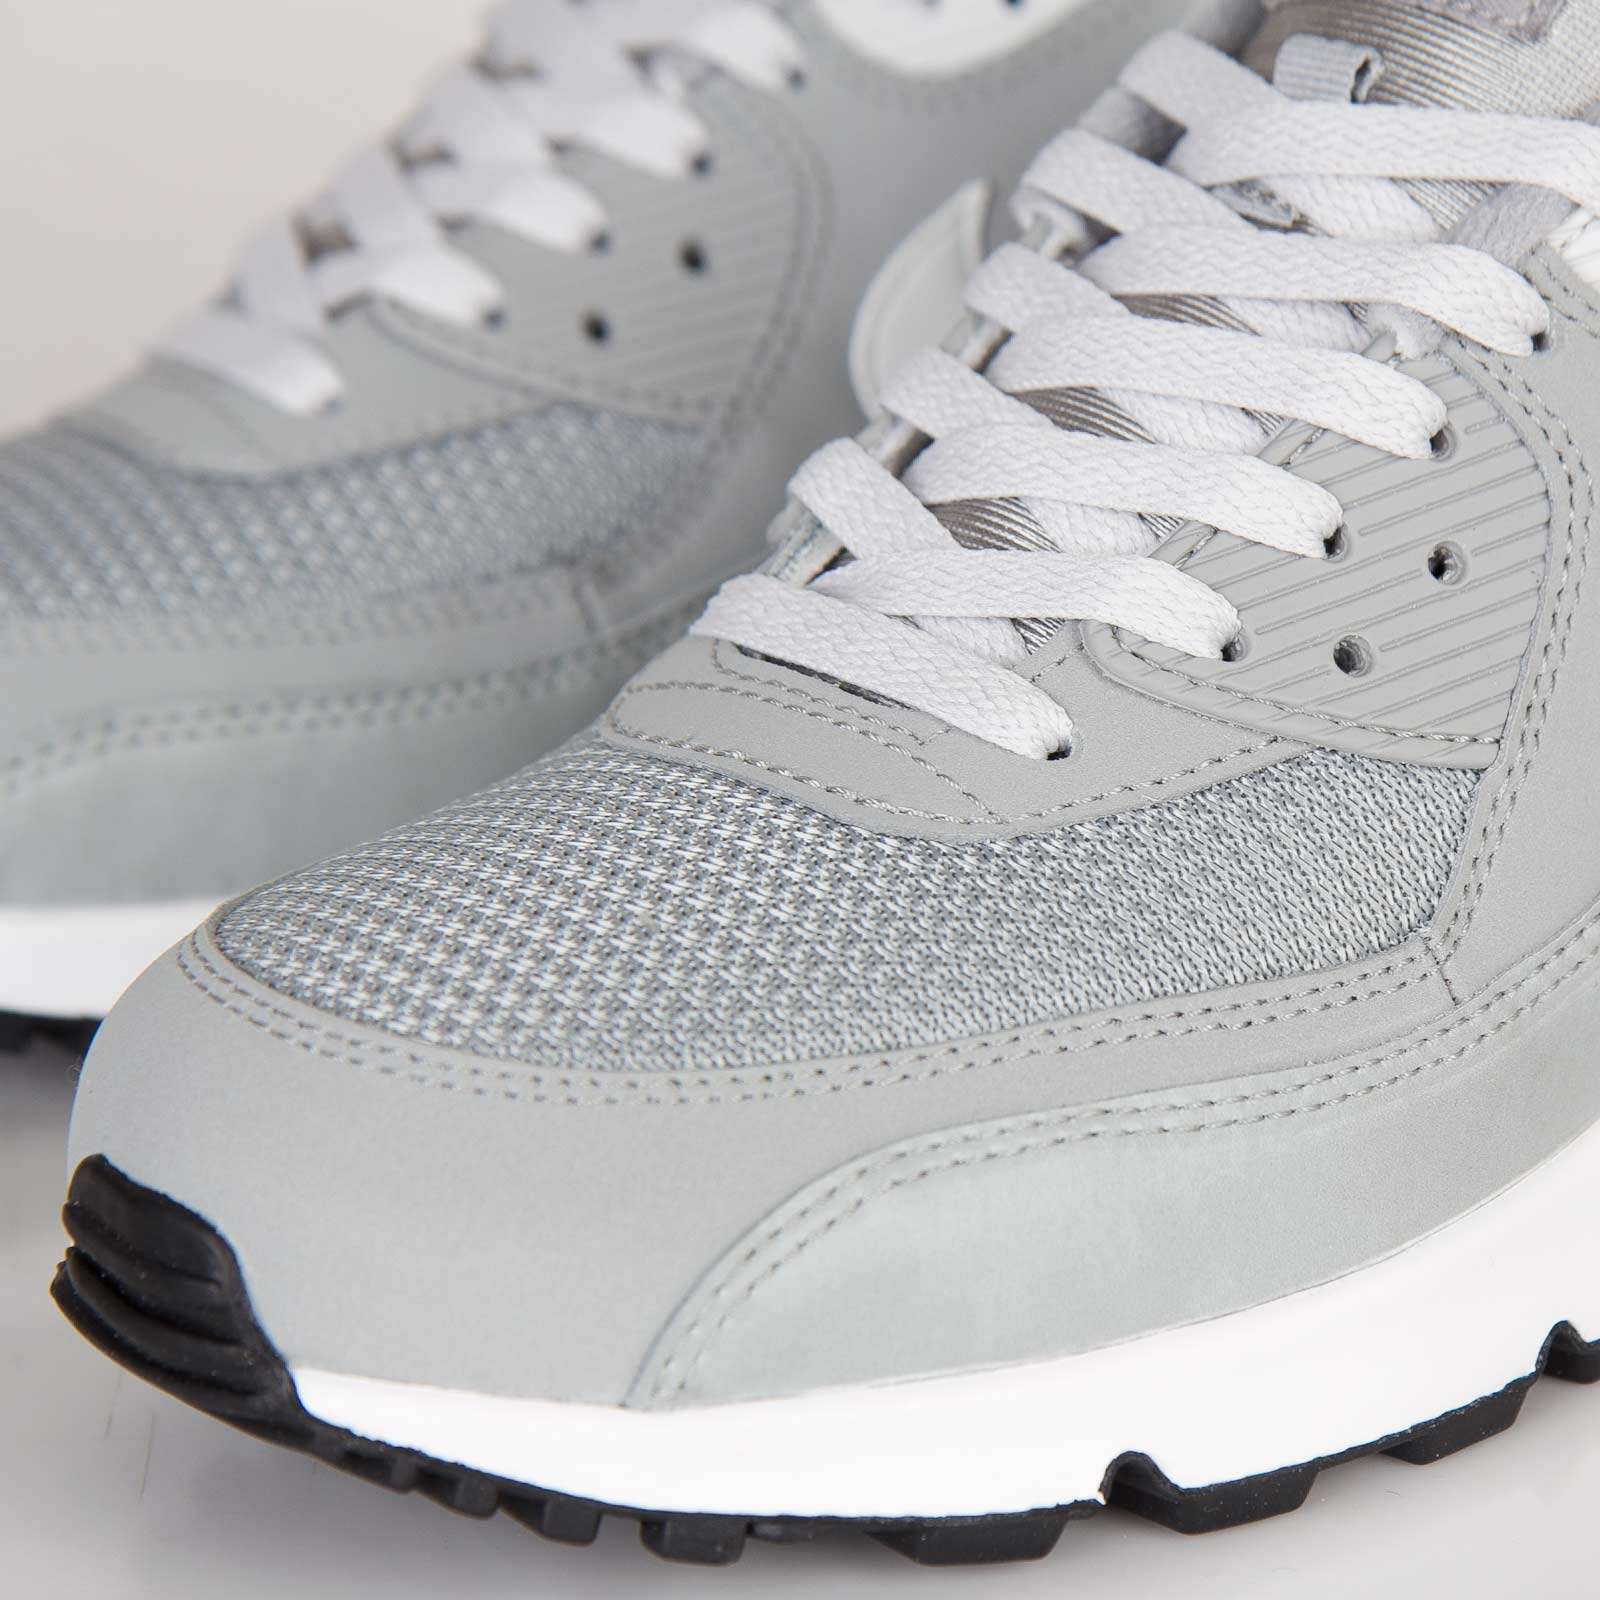 online retailer 4e914 d97a2 Nike Air Max 90 Essential - 537384-028 - Sneakersnstuff   sneakers    streetwear online since 1999